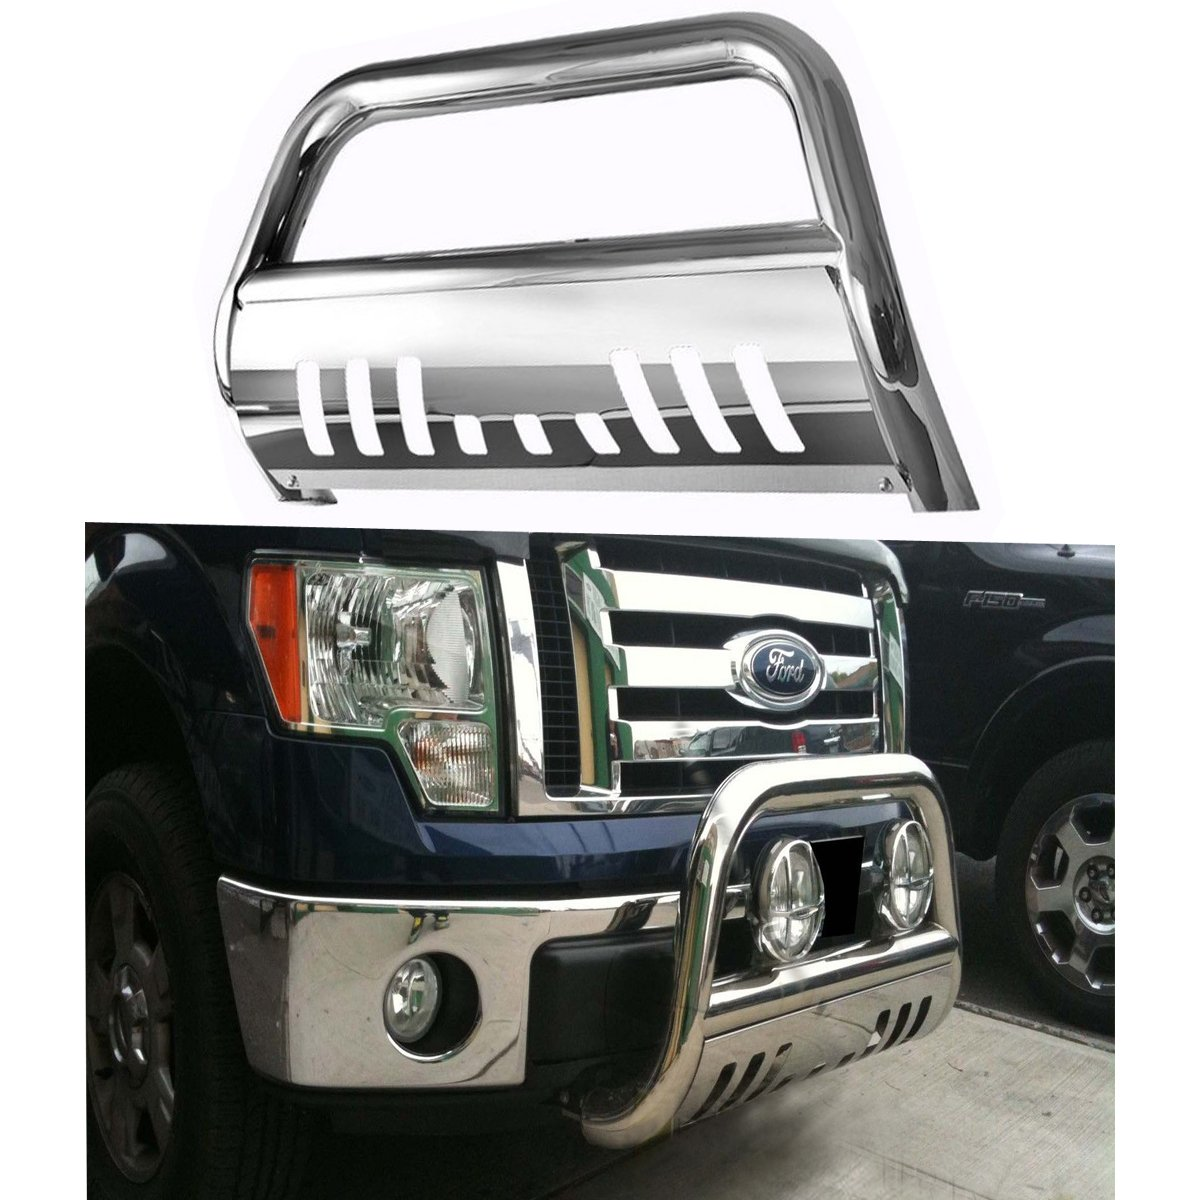 Bull Bar Skid Plate Front Push Bumper Grille Guard Stainless Steel Chrome for 2004-2008 Ford F150 (Not Fit 2004 Heritage)